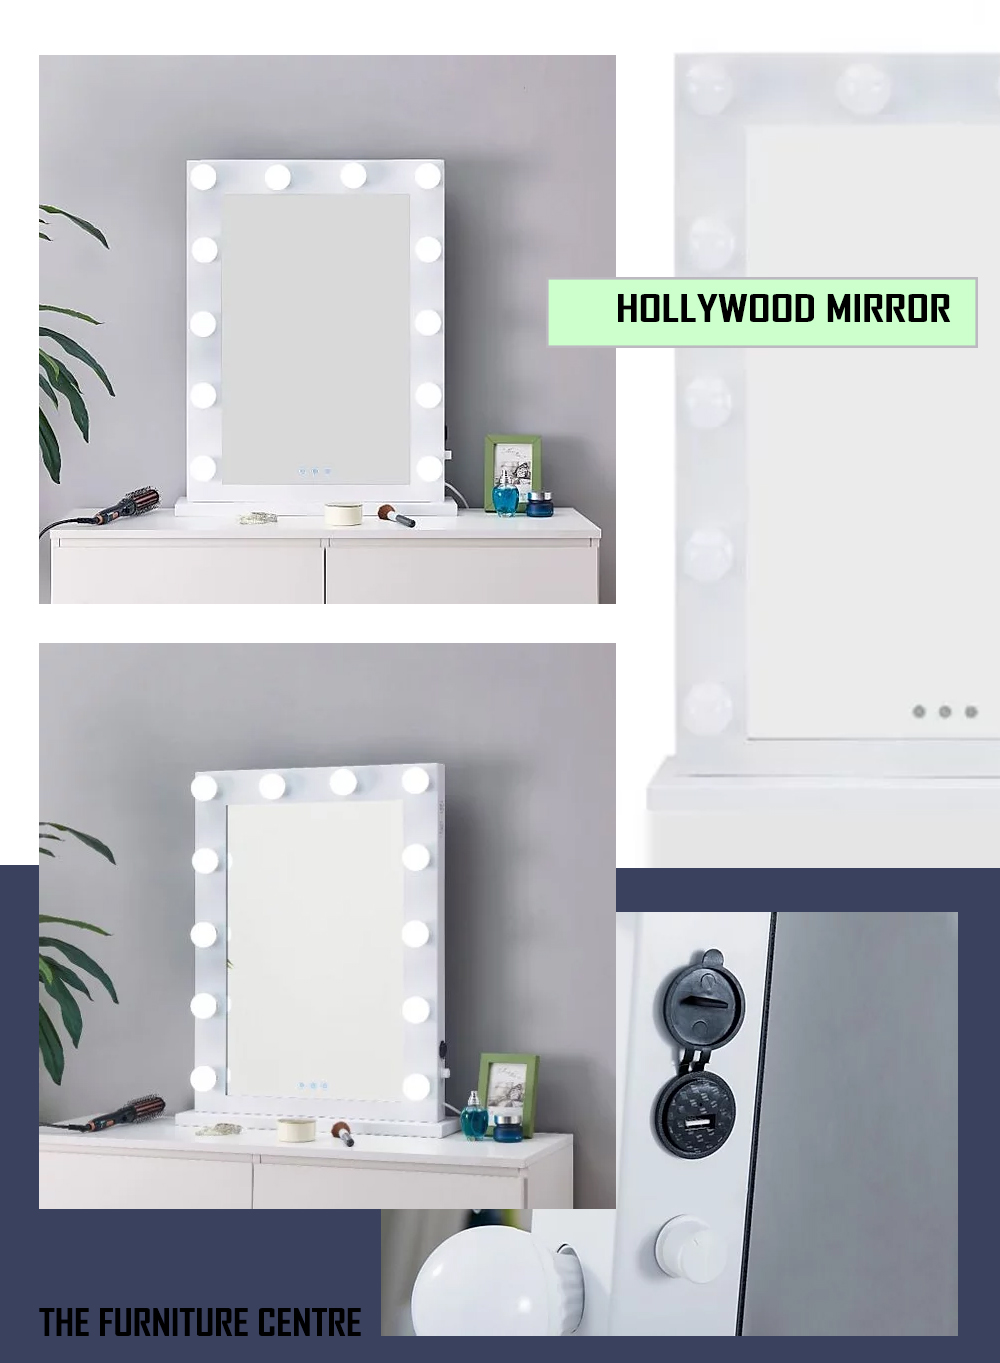 Hollywood Mirror The Furniture Centre Cork